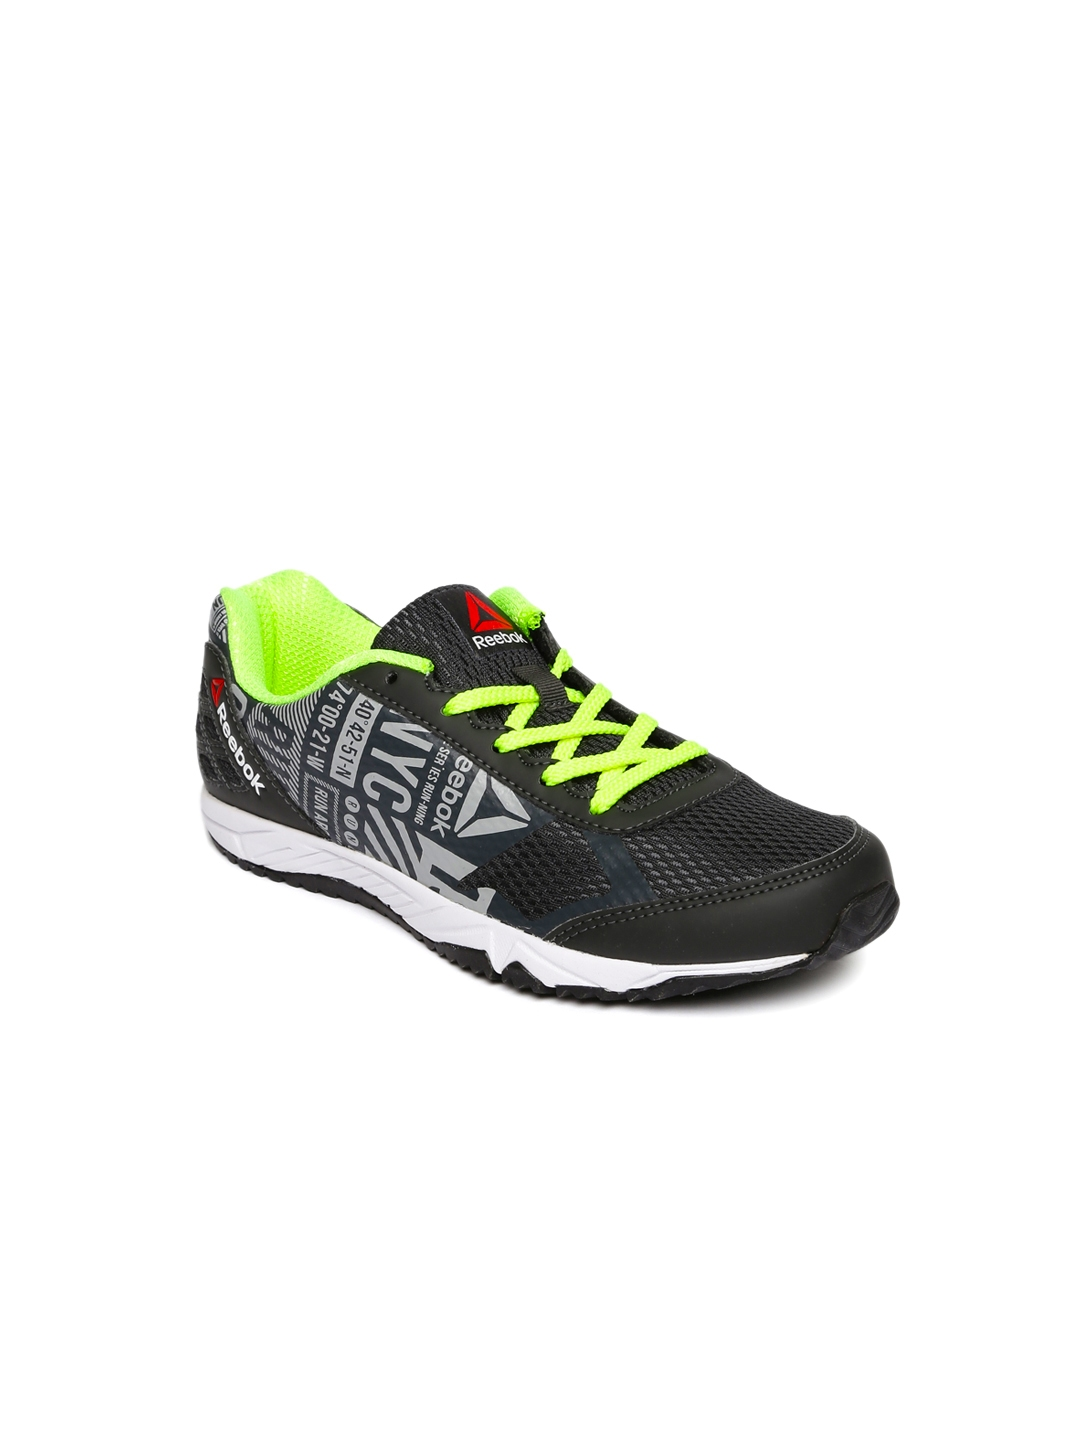 new selection best selling perfect quality Buy Reebok Girls Charcoal Printed Run Voyager Running Shoes ...